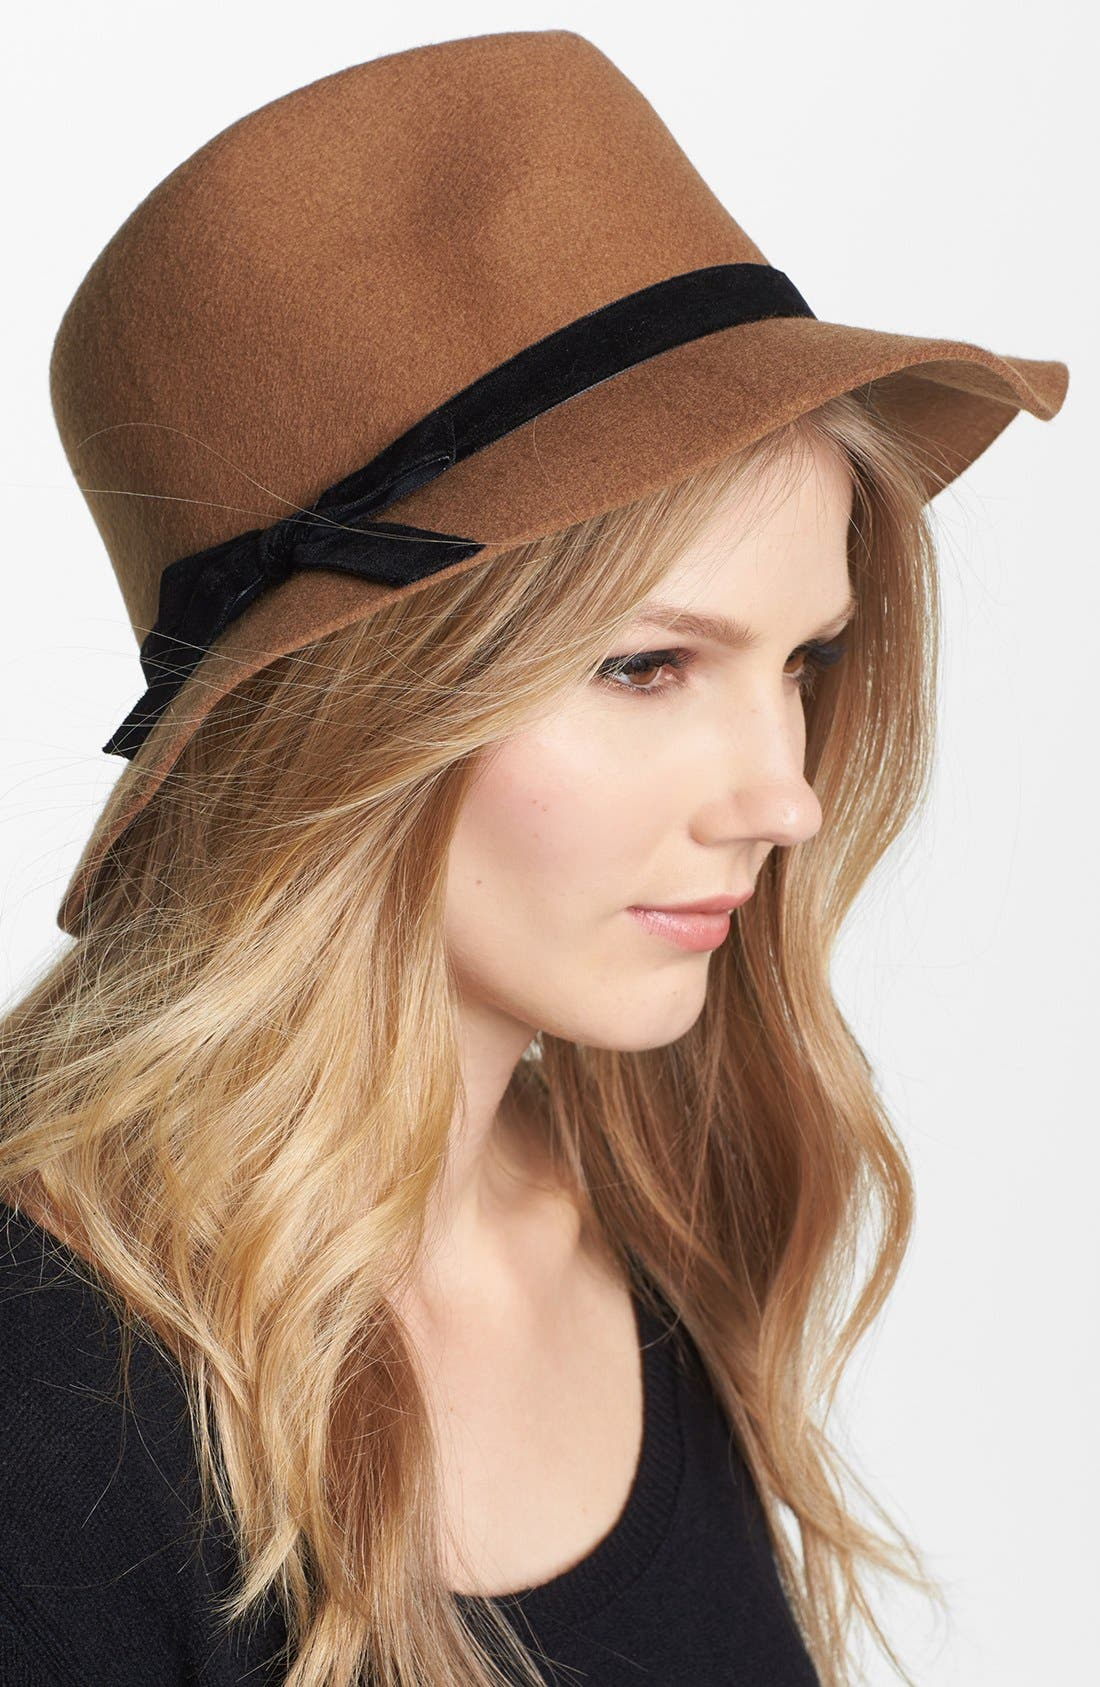 Alternate Image 1 Selected - Nordstrom Floppy Wool Felt Fedora